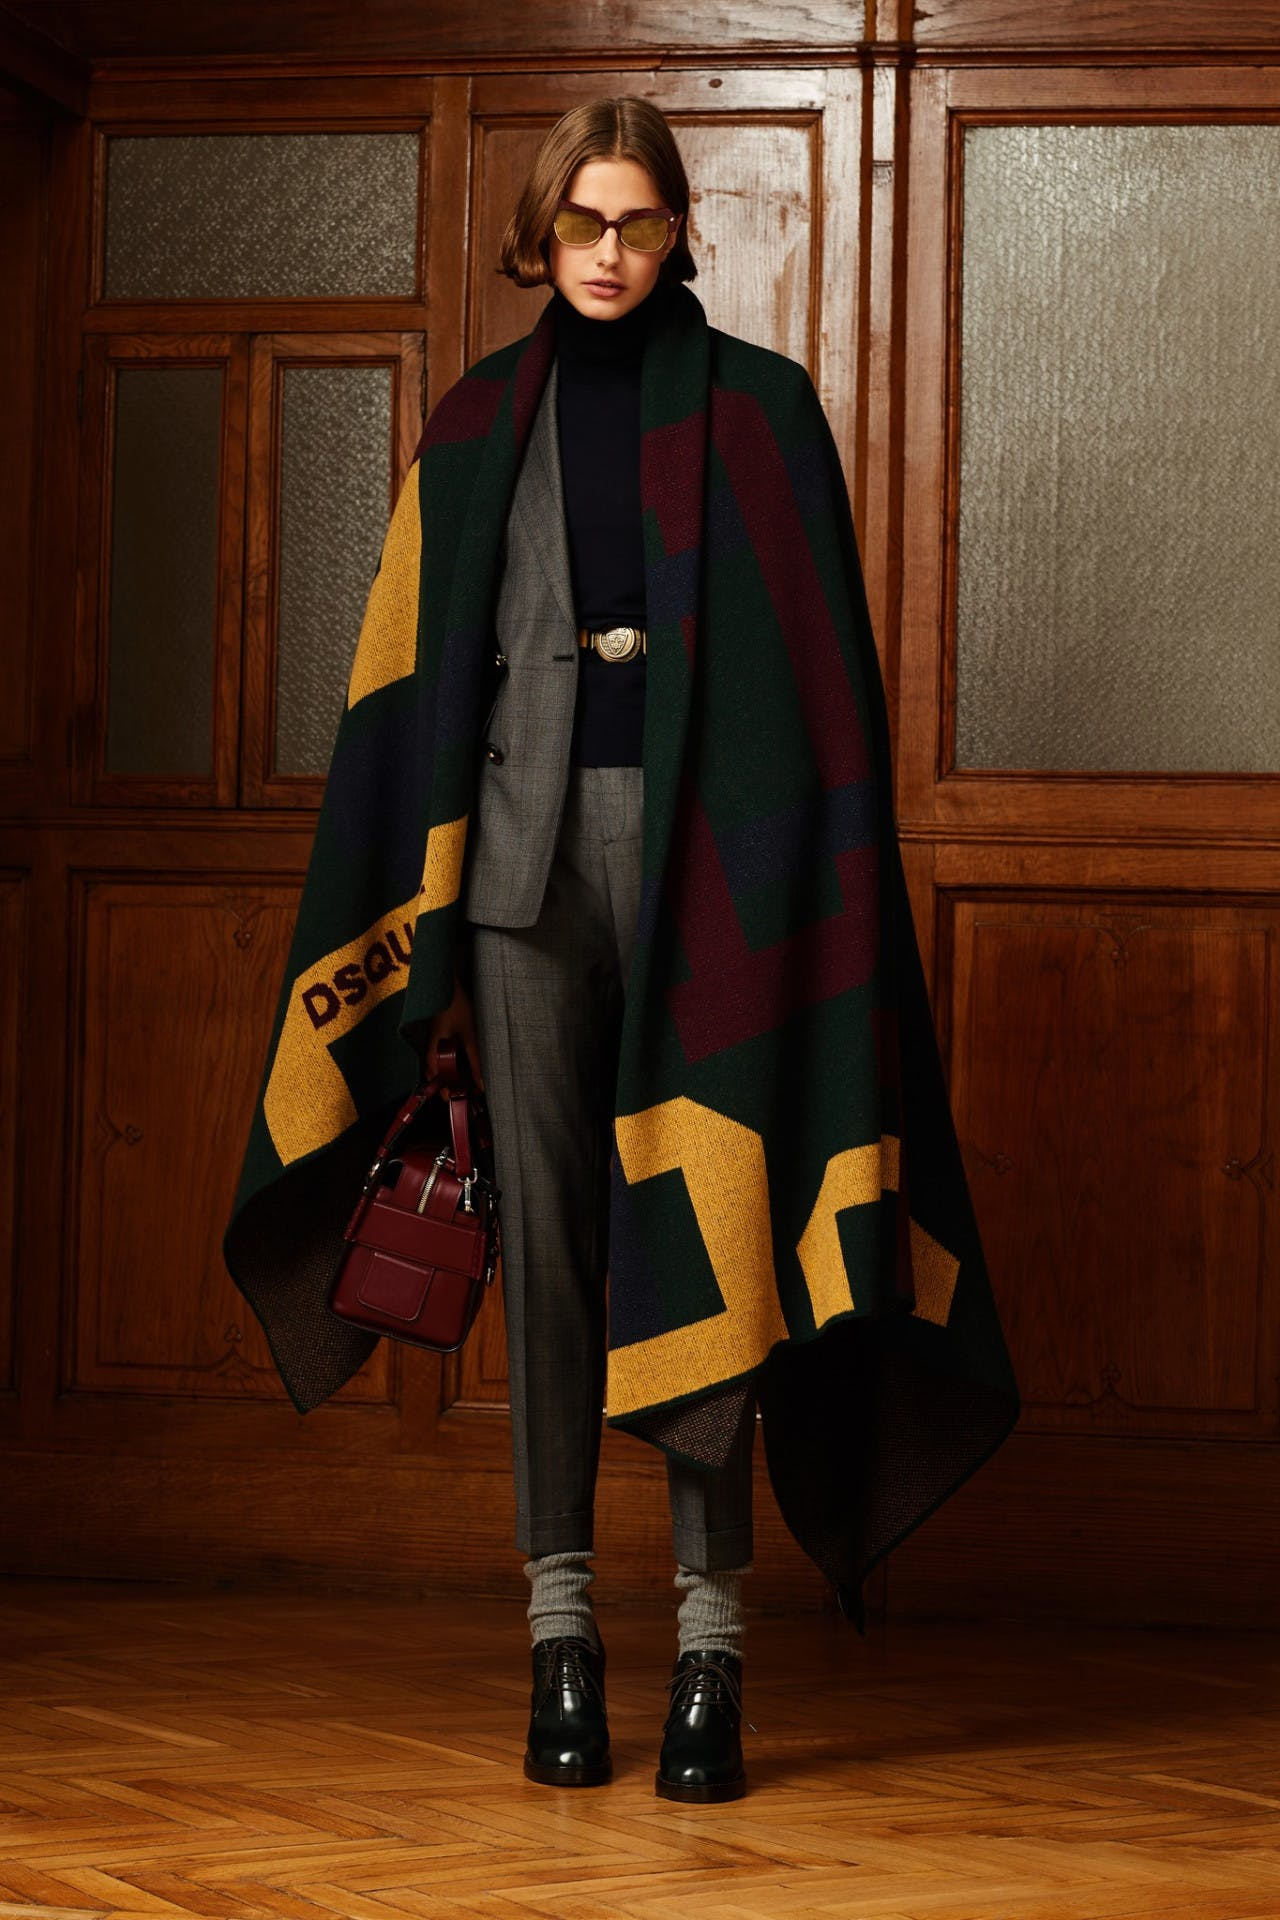 dsquared2 pre fall milan fashion runway backstage pre order showroom trunk show womenswear suit